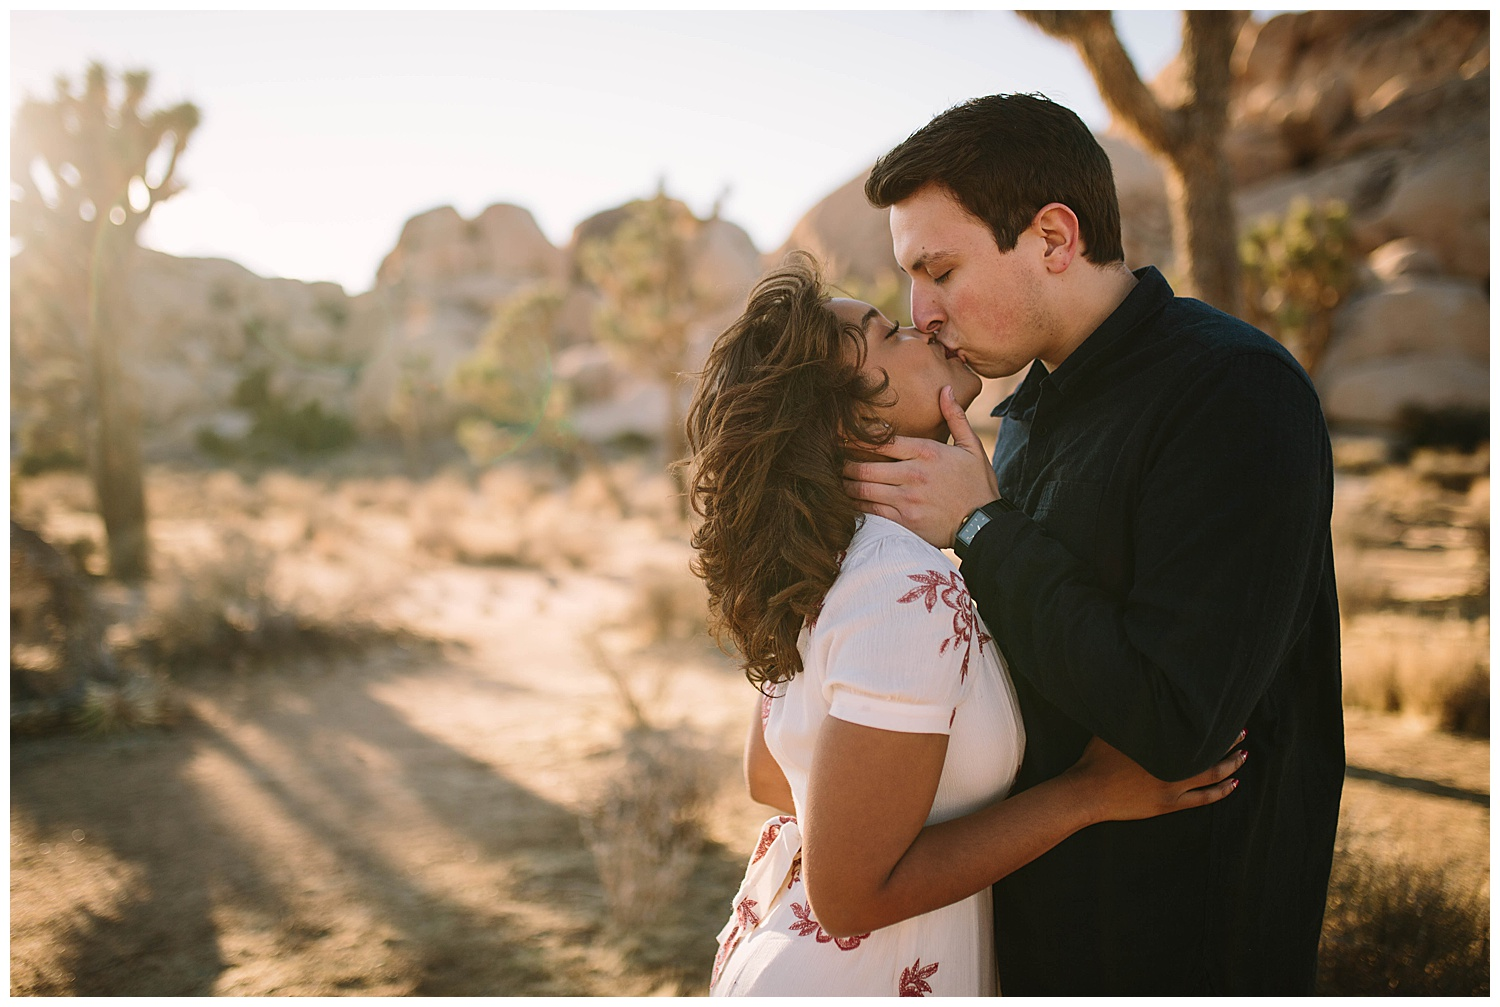 la.lifestyle.photography.session.engaged.malibu.joshuatree.kendralynnephotography-13.jpg